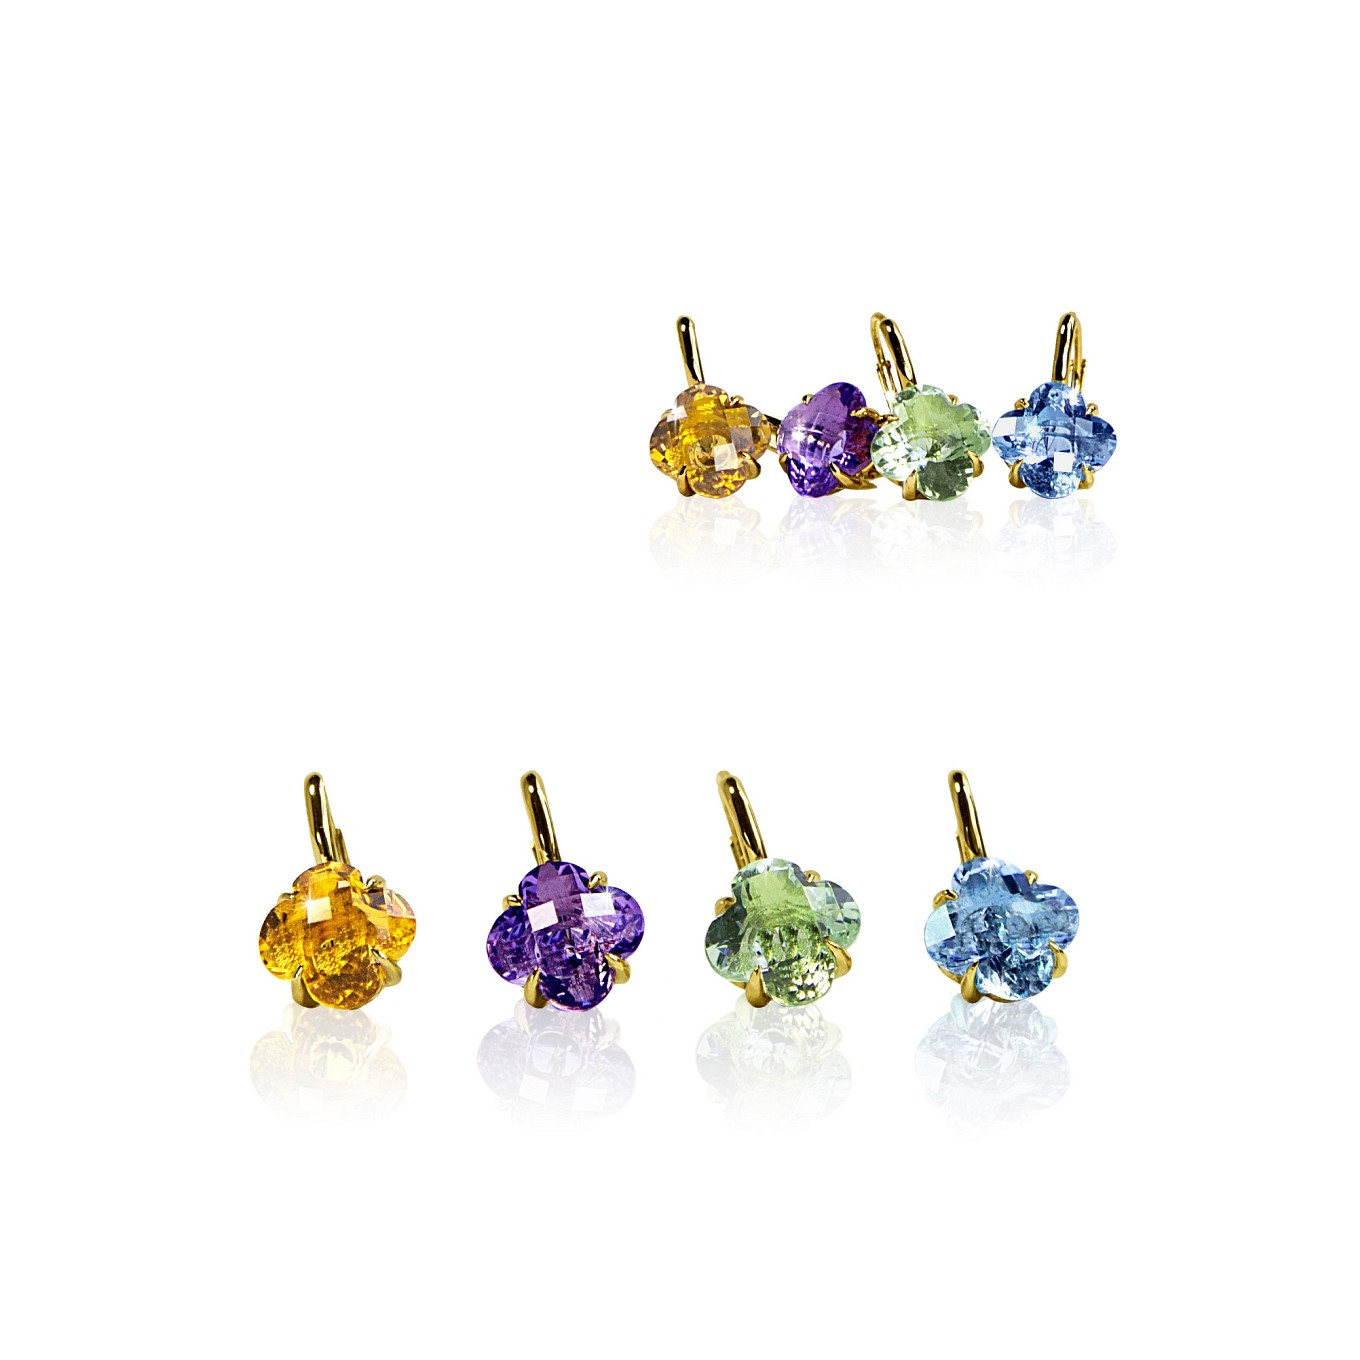 CITRINE, AMETHYST, GREEN AMETHYST, & BLUE TOPAZ CLOVER DROP EARRINGS IN YELLOW GOLD